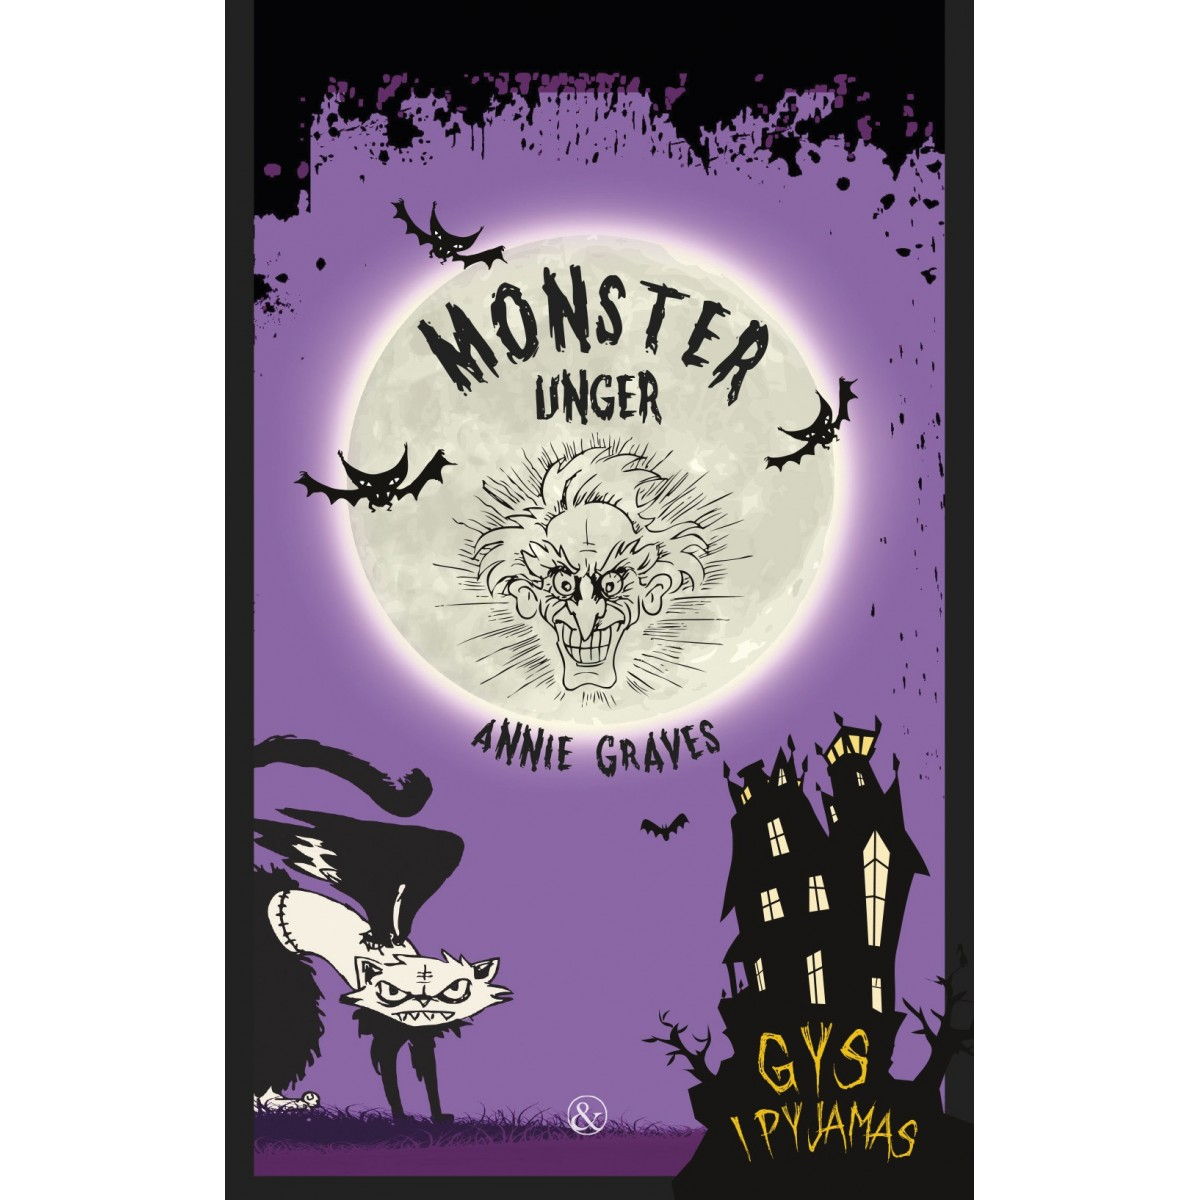 Annie Graves: Monsterunger